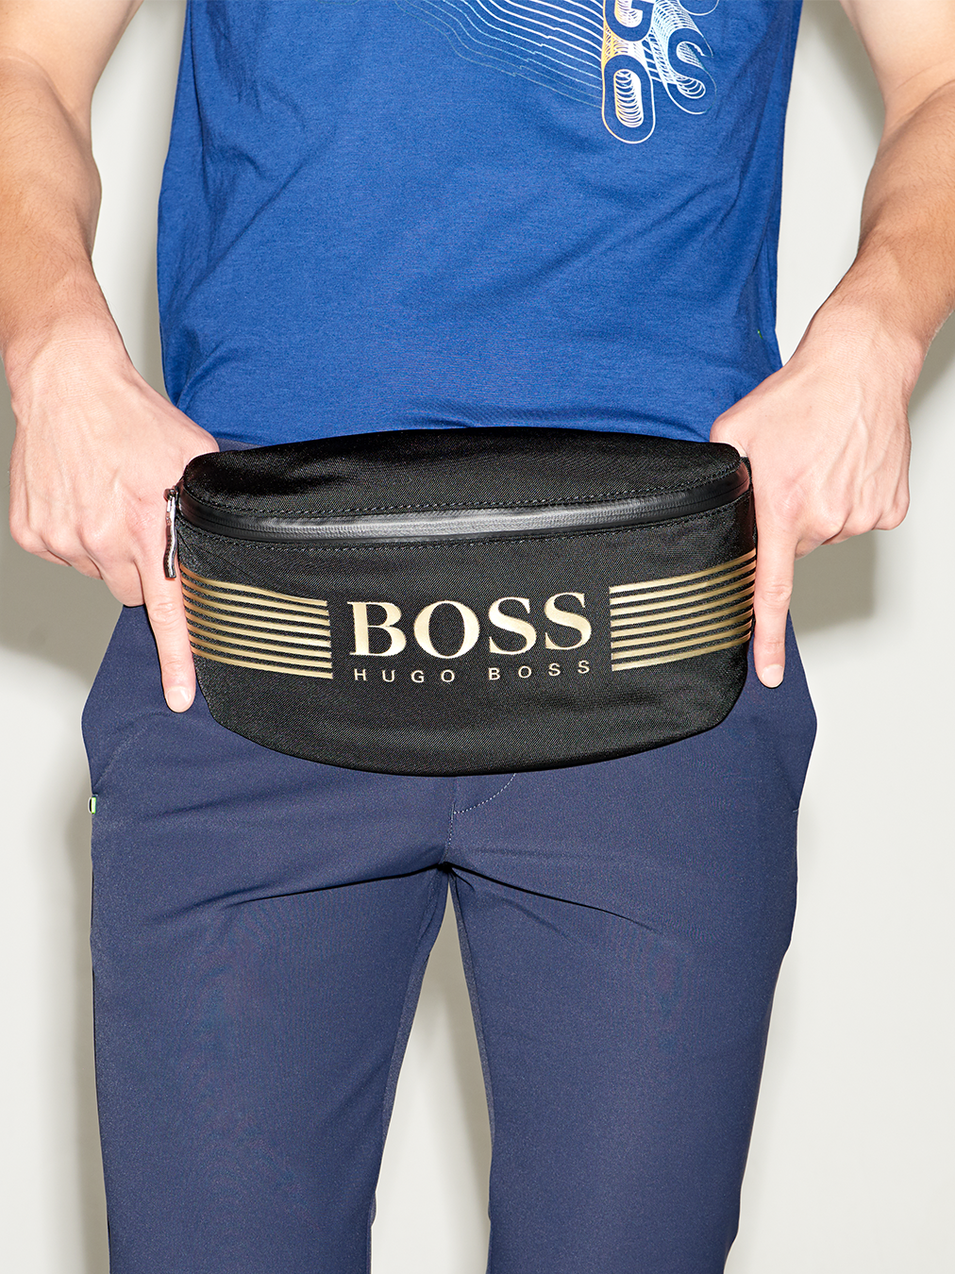 BOSS Athleisure Fall/Winter 2018